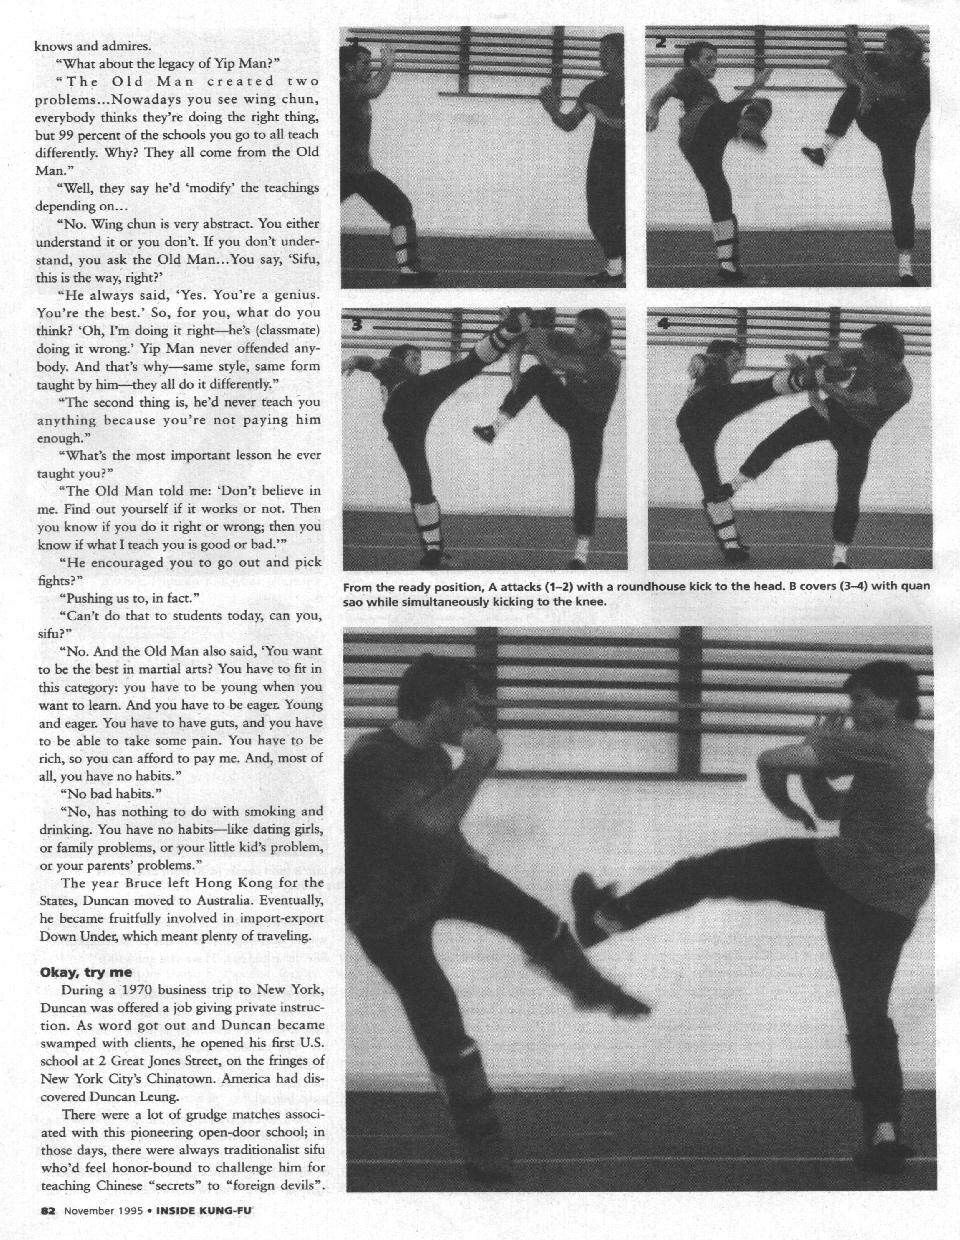 Inside Kung Fu November 1995 page 5